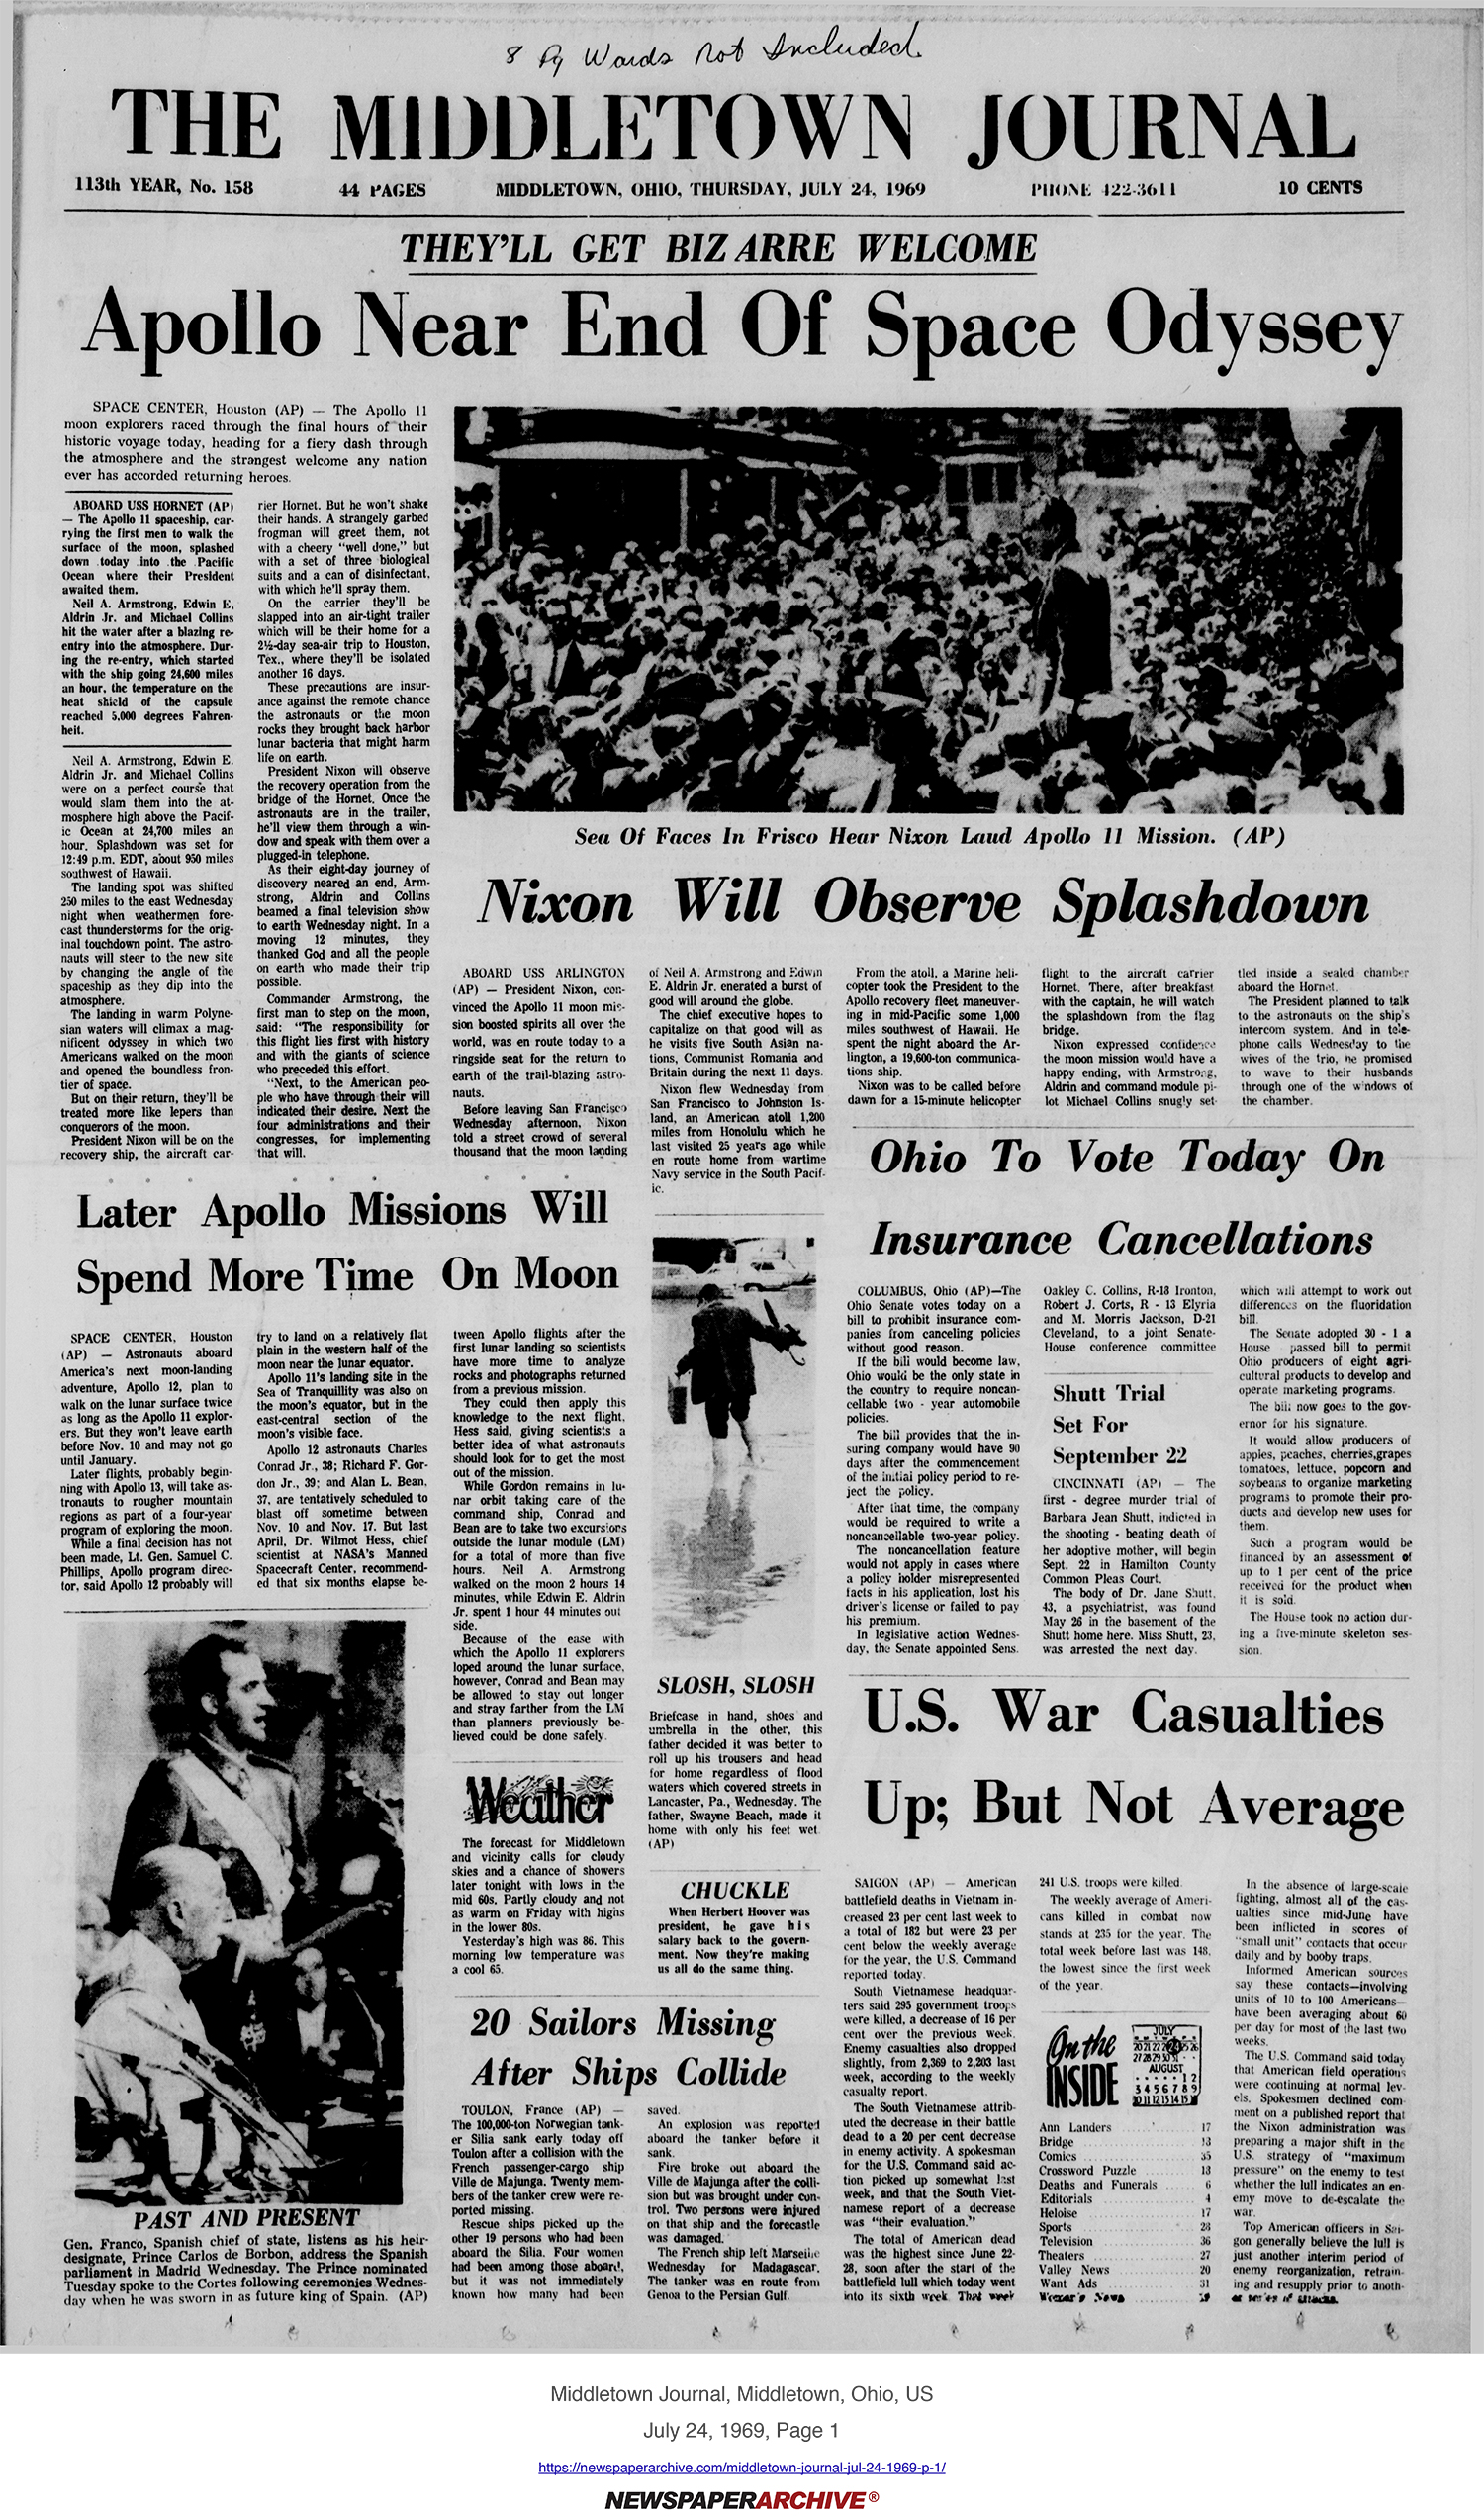 middletown-journal-Jul-24-1969-p-1.jpg